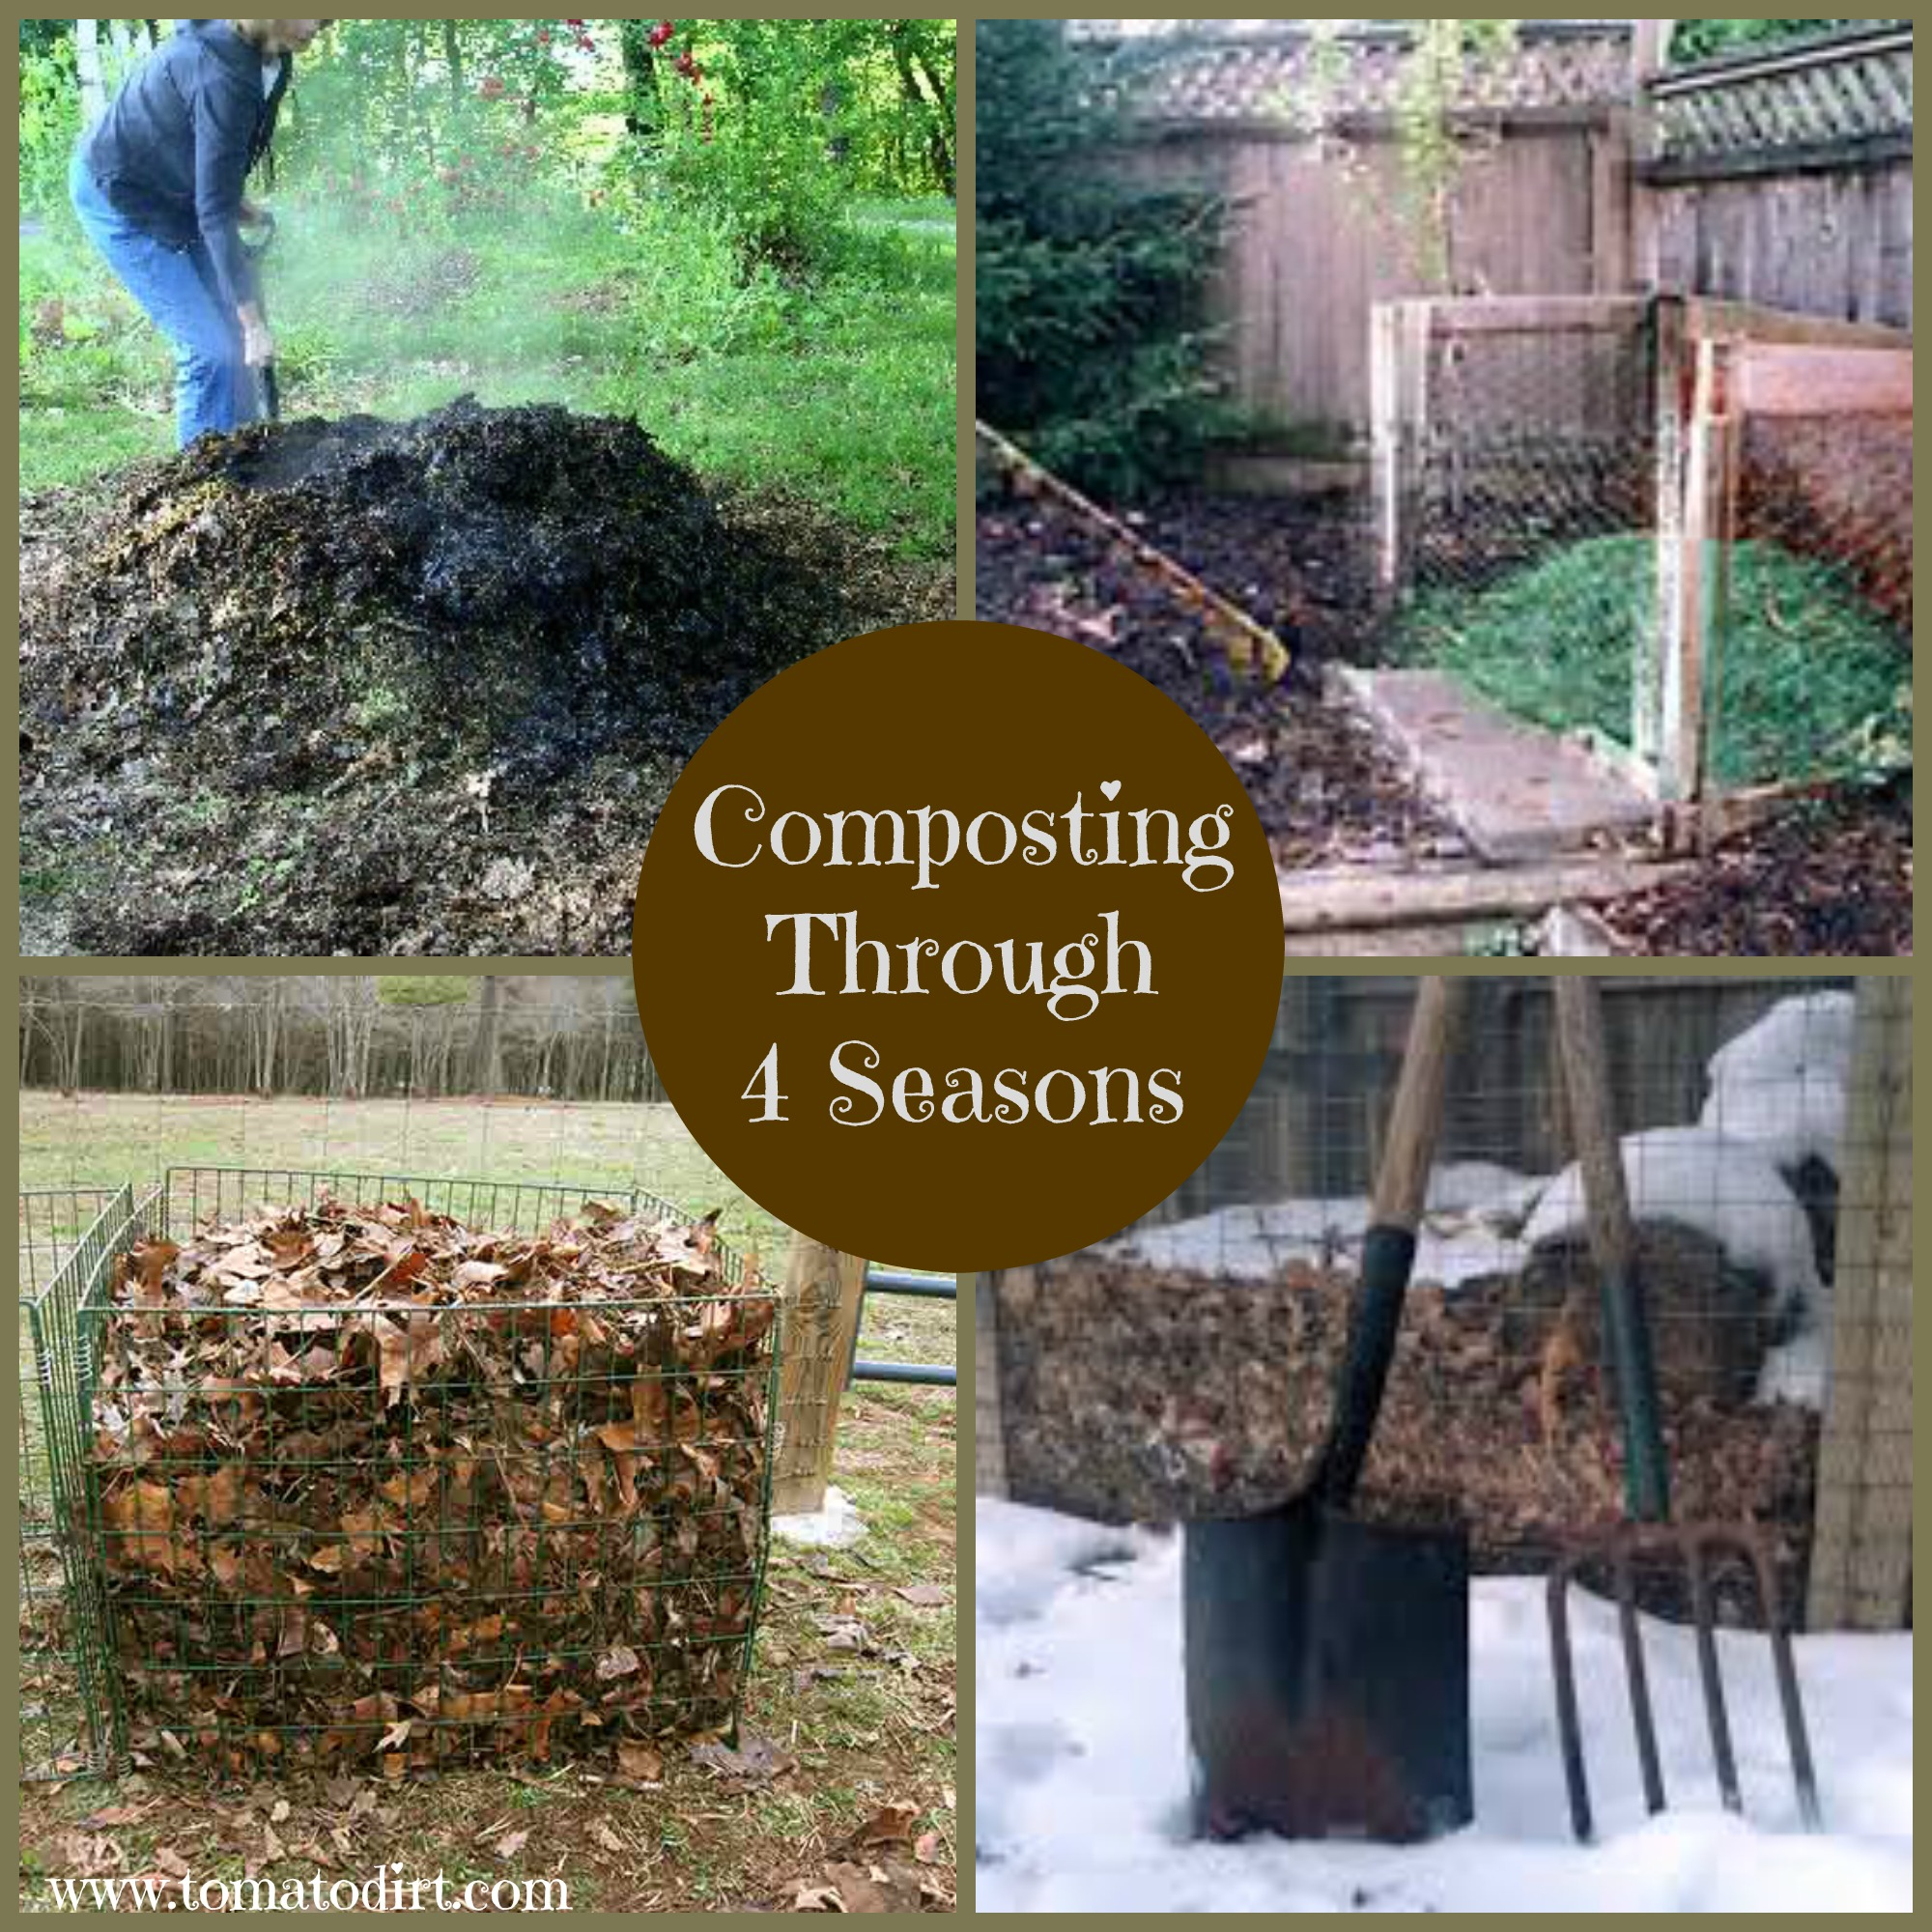 Composting through 4 seasons with Tomato Dirt